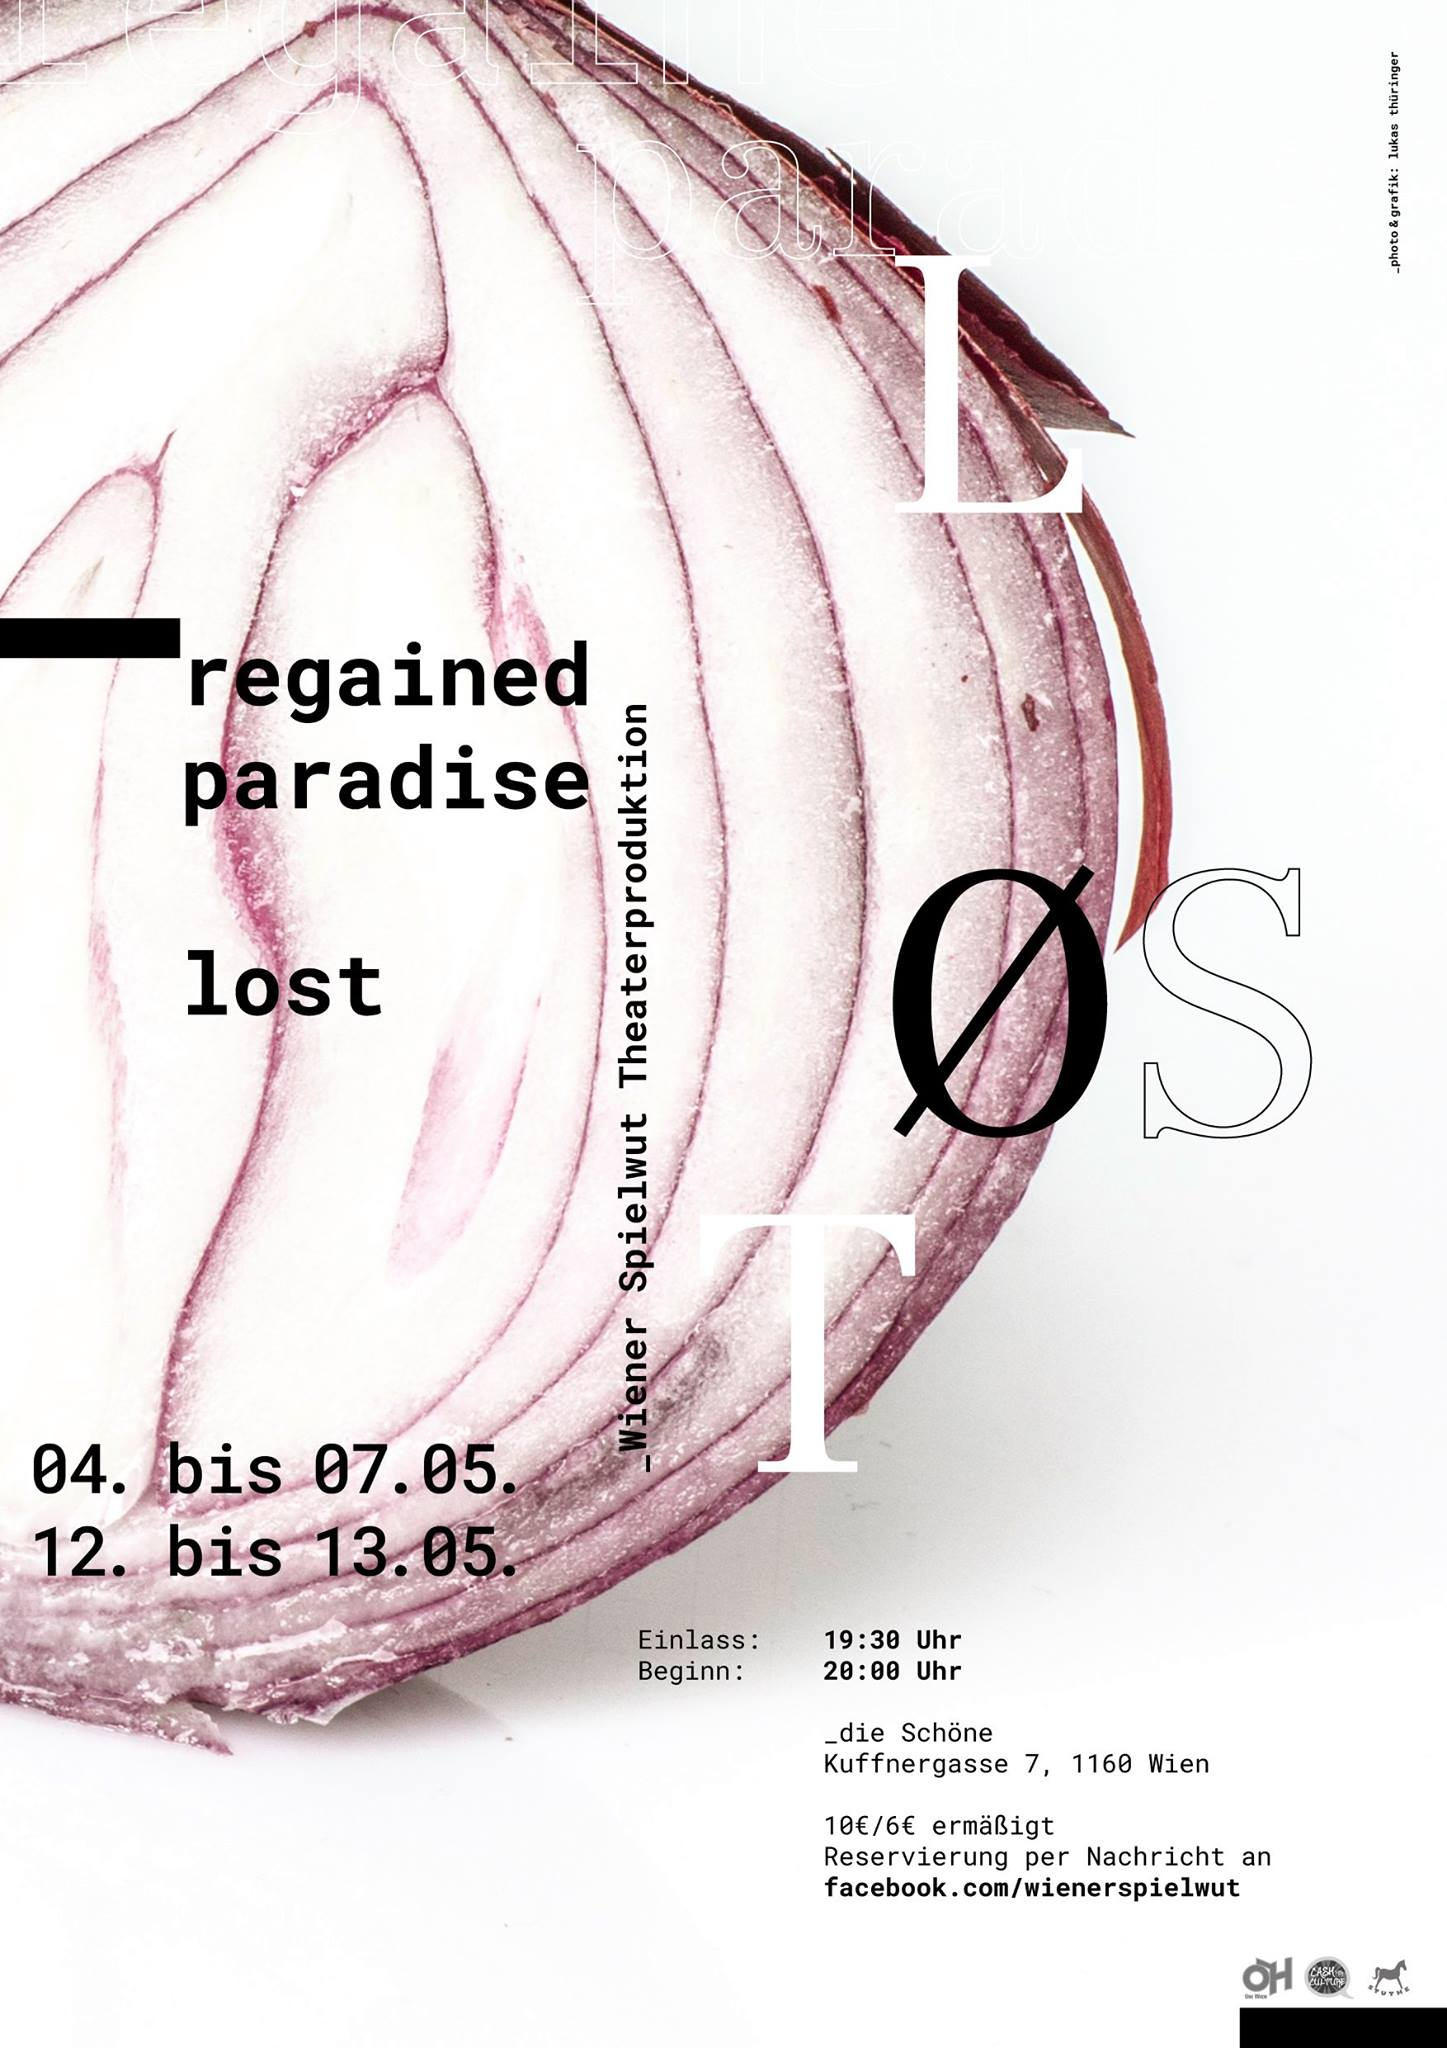 Regained Paradise Lost